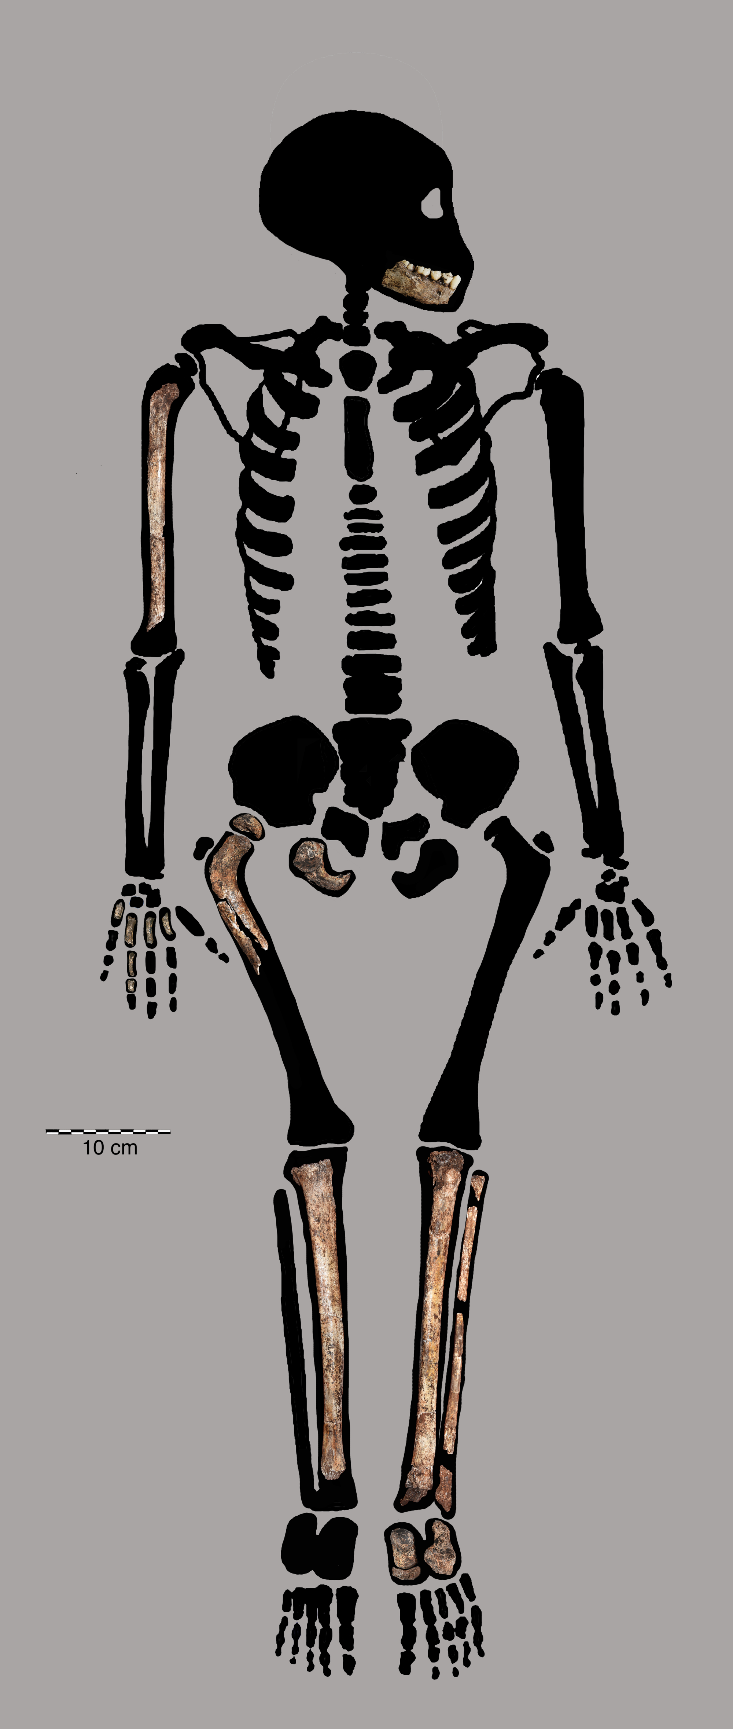 Newswise: Homo naledi juvenile remains offers clues to how our ancestors grew up